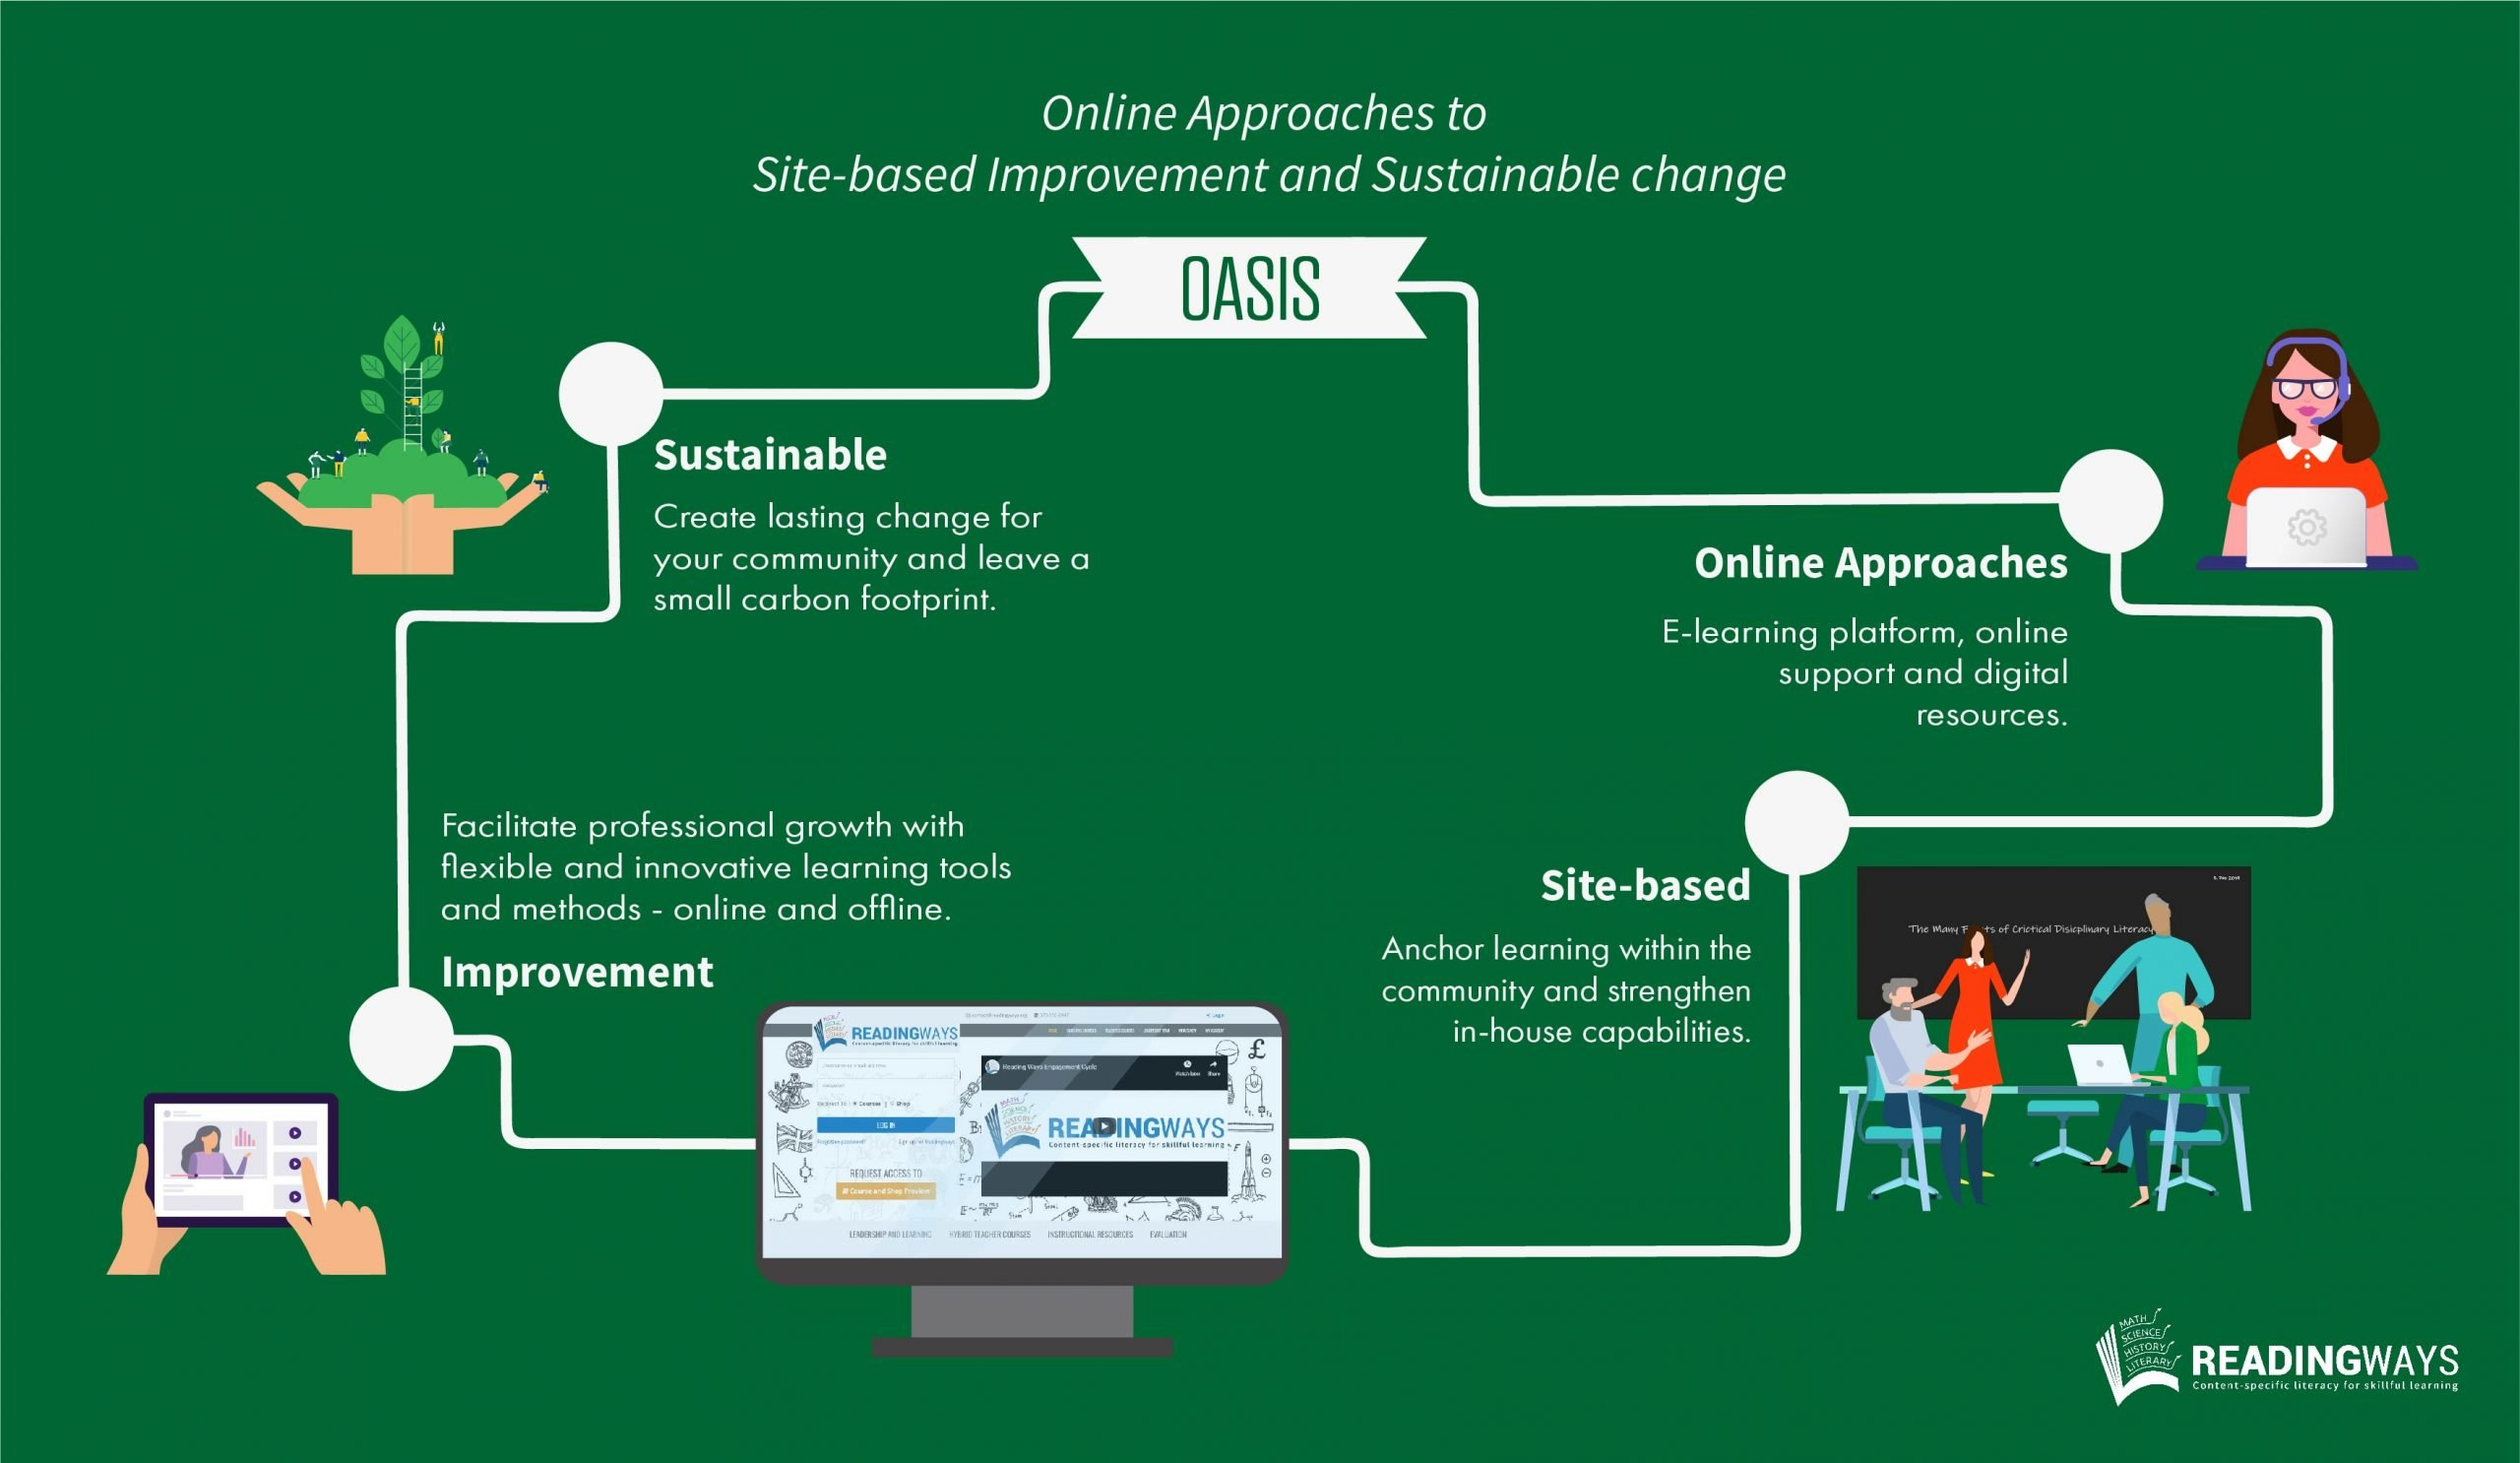 Online Approaches to Site-based improvements and sustainable change